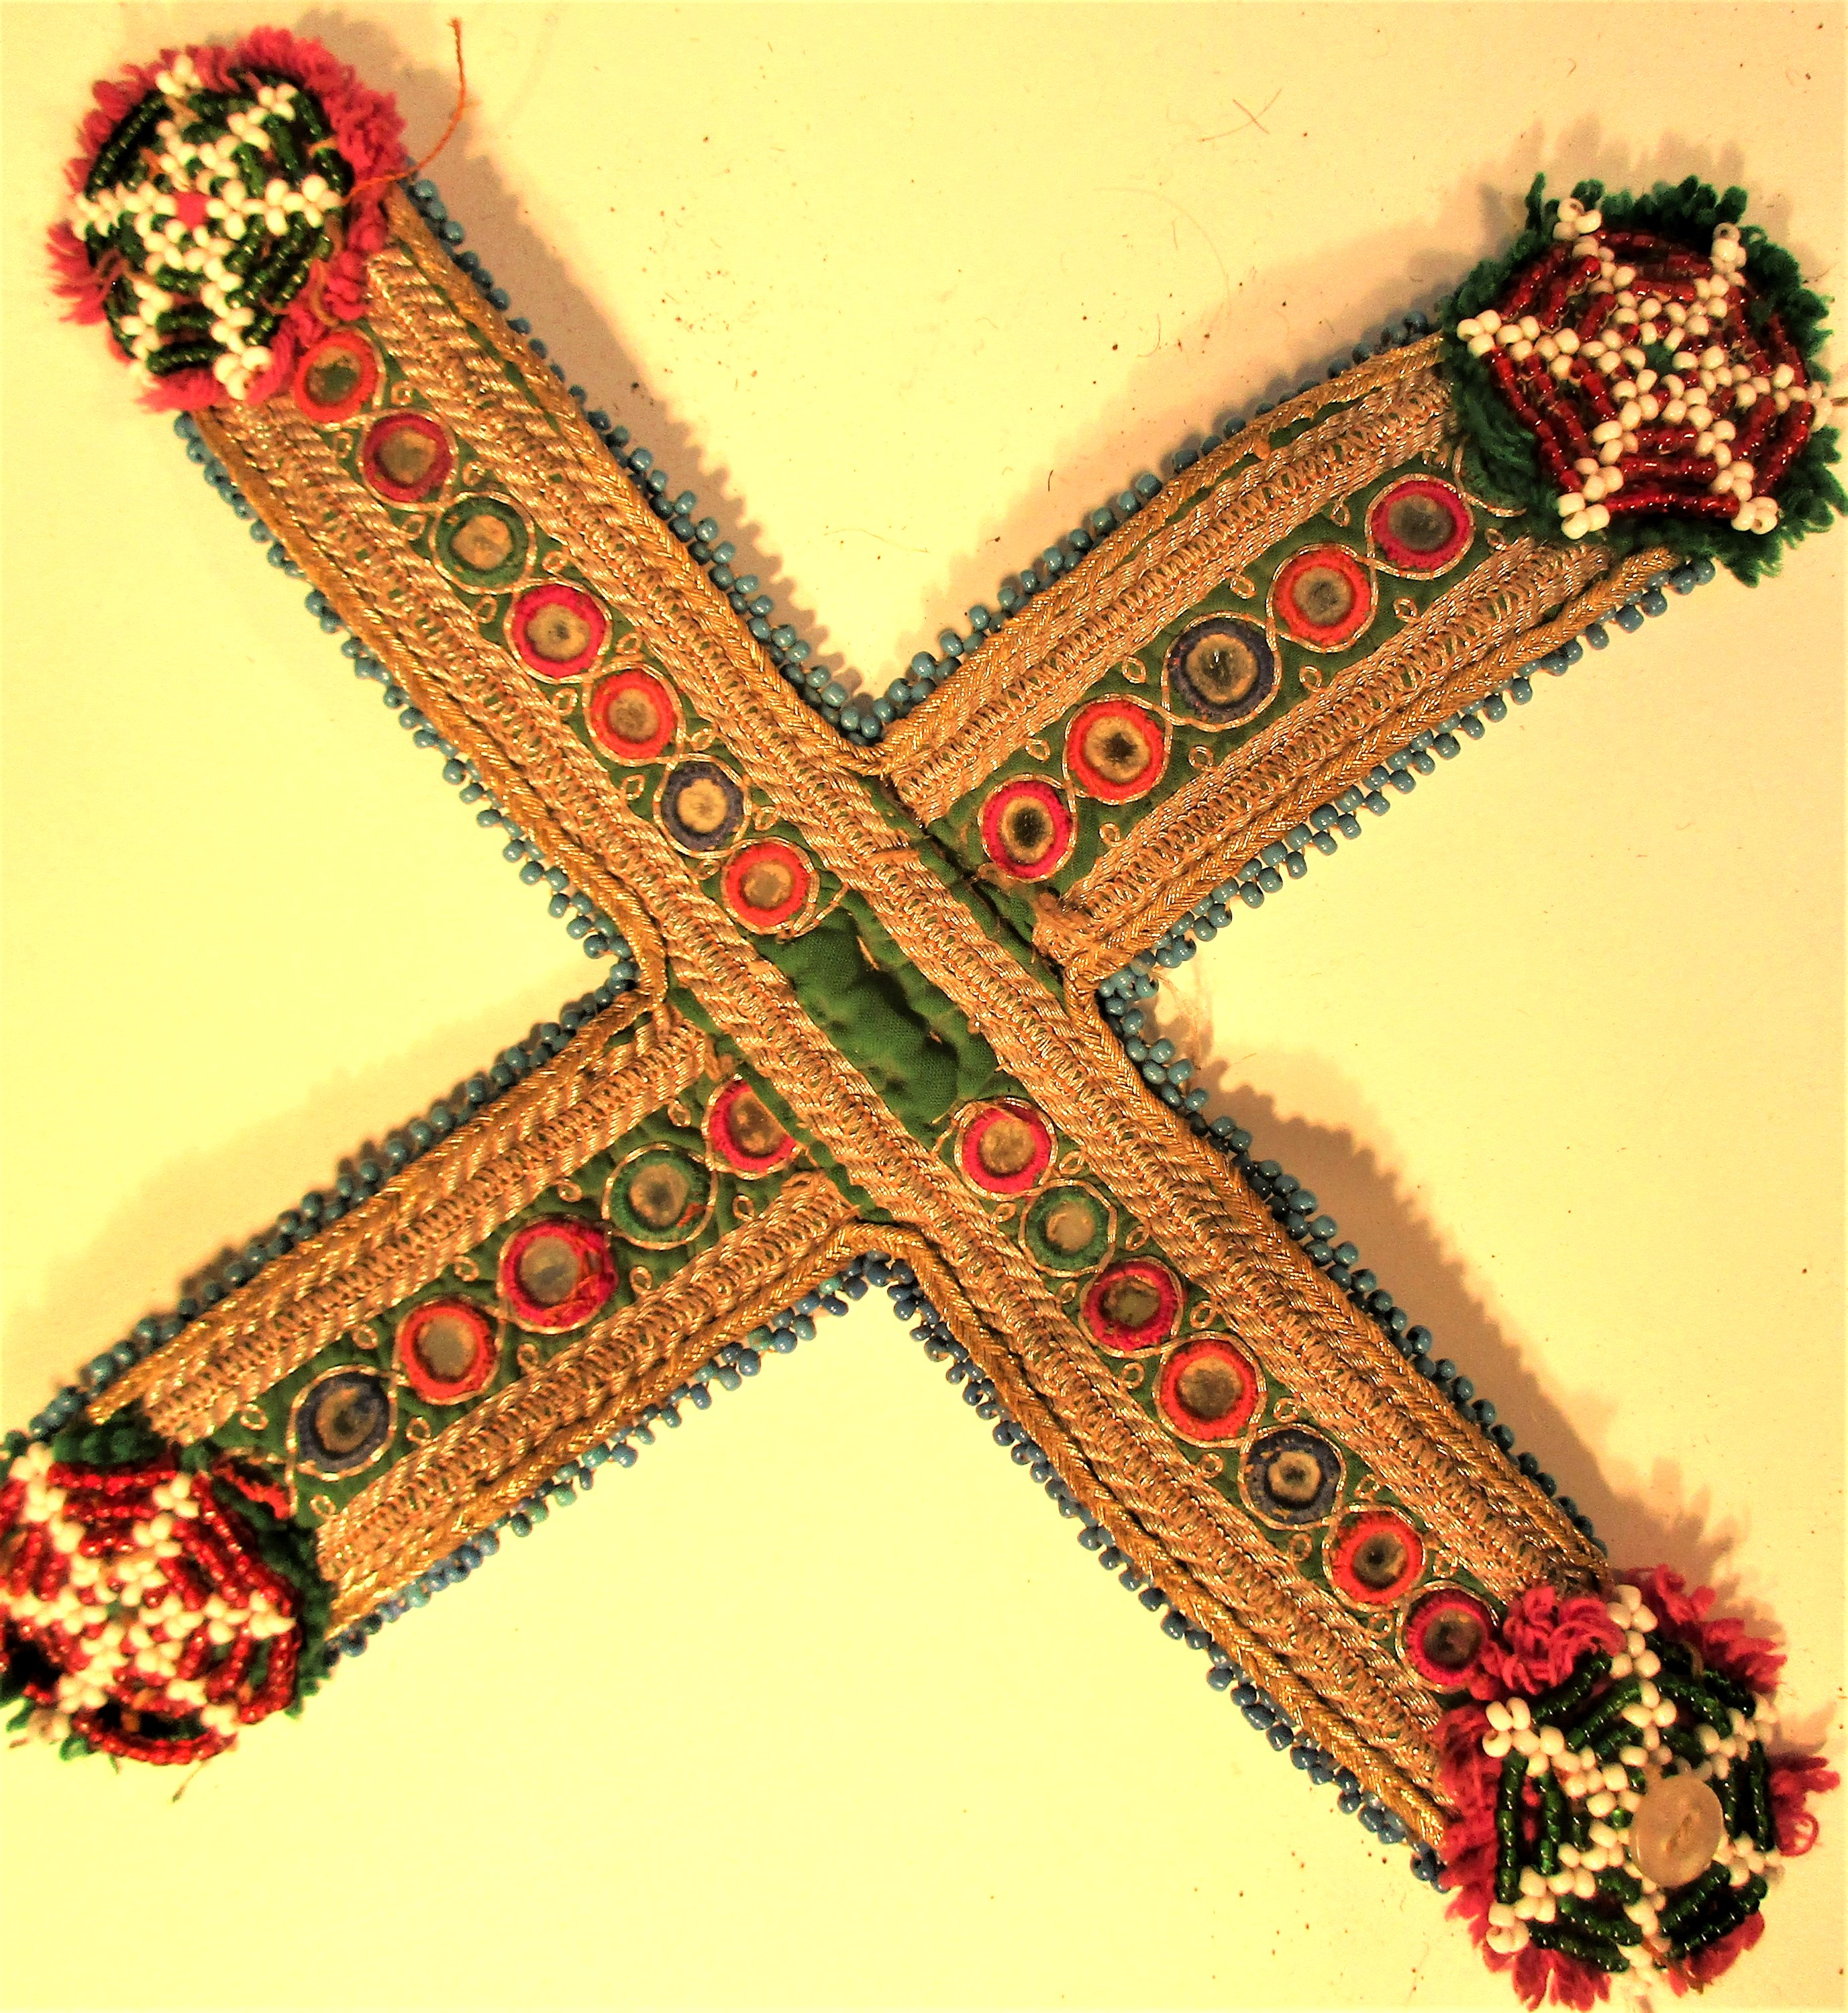 Dress decoration used by Koochi nomads. Embroidered gold wire, gul-i-perons and small mirrors. 20